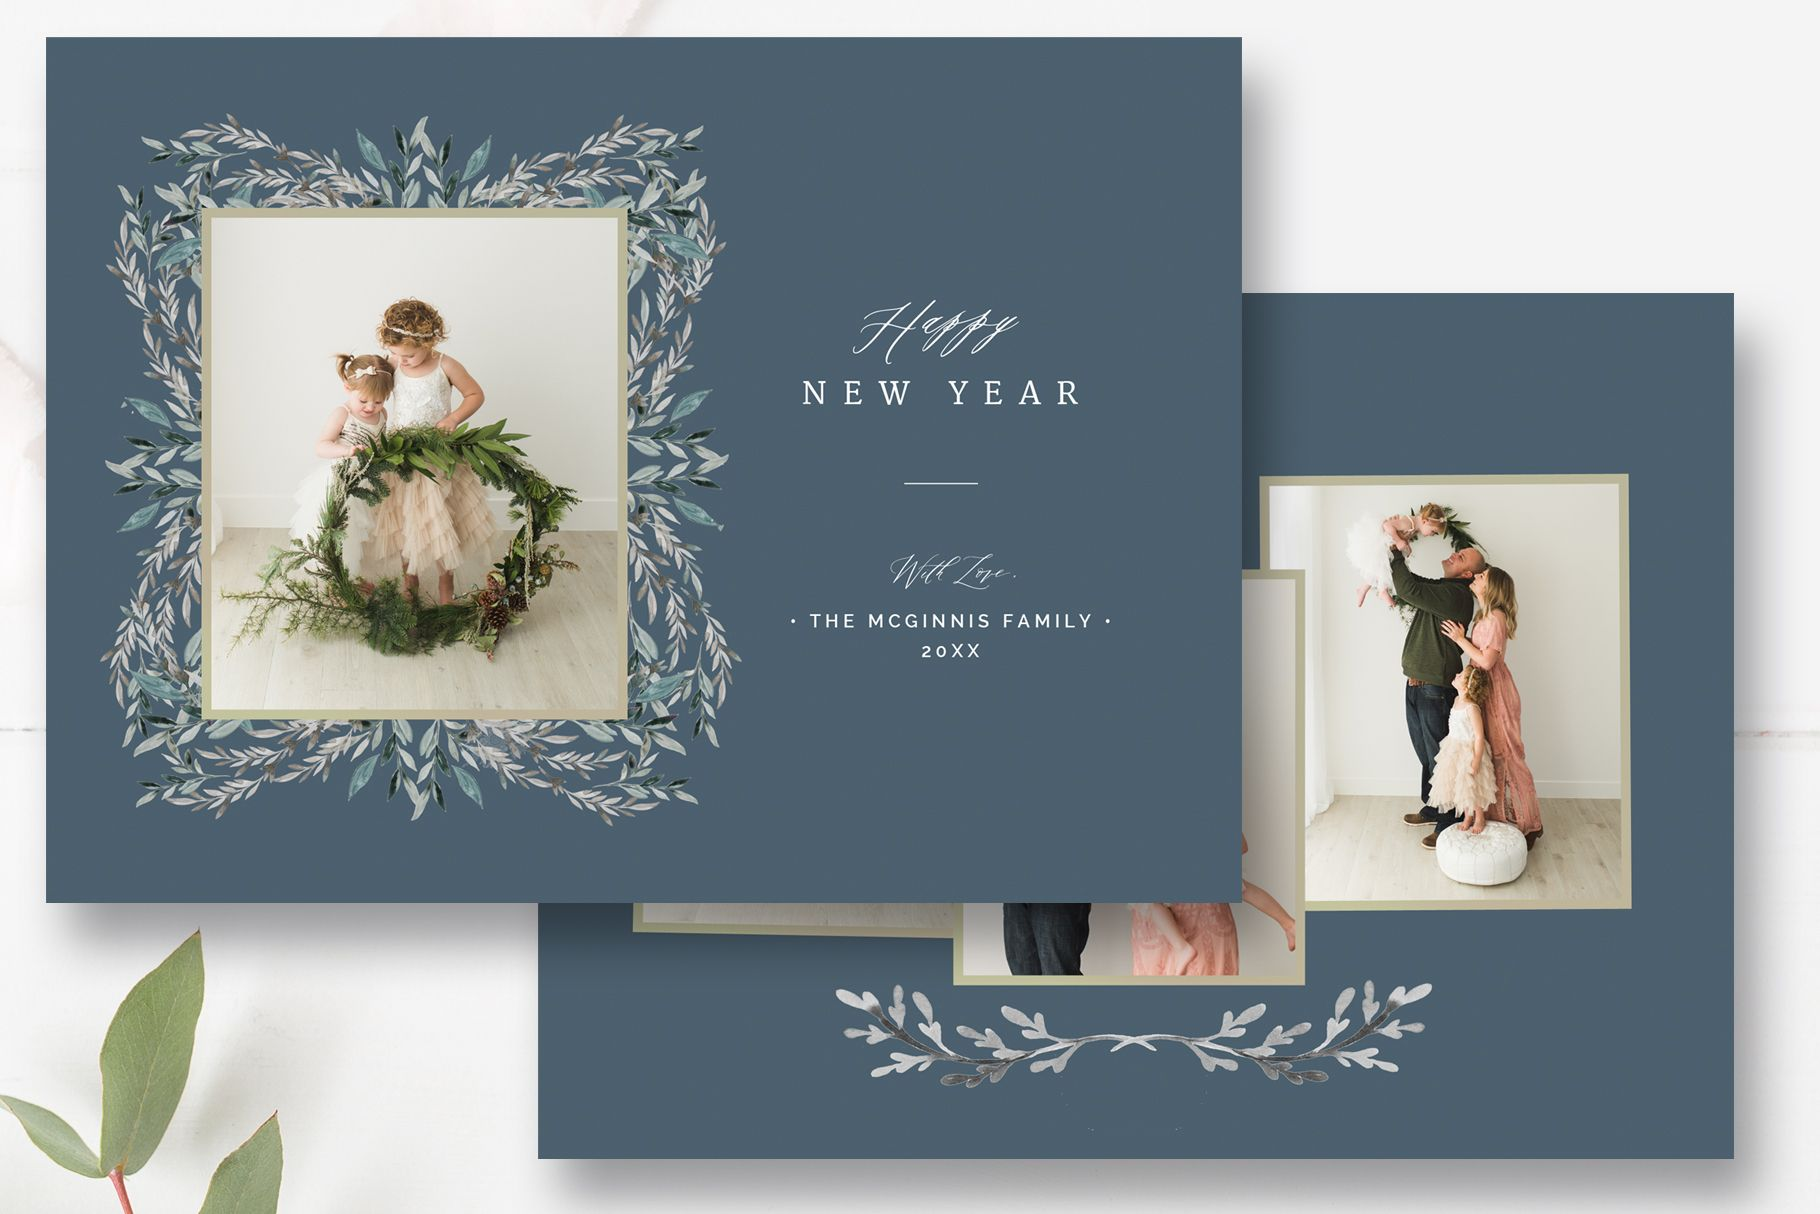 New Years Photo Card Template Happy Holidays Photoshop Template By Stephanie Design Photo Card Template Happy New Year Cards New Year Card